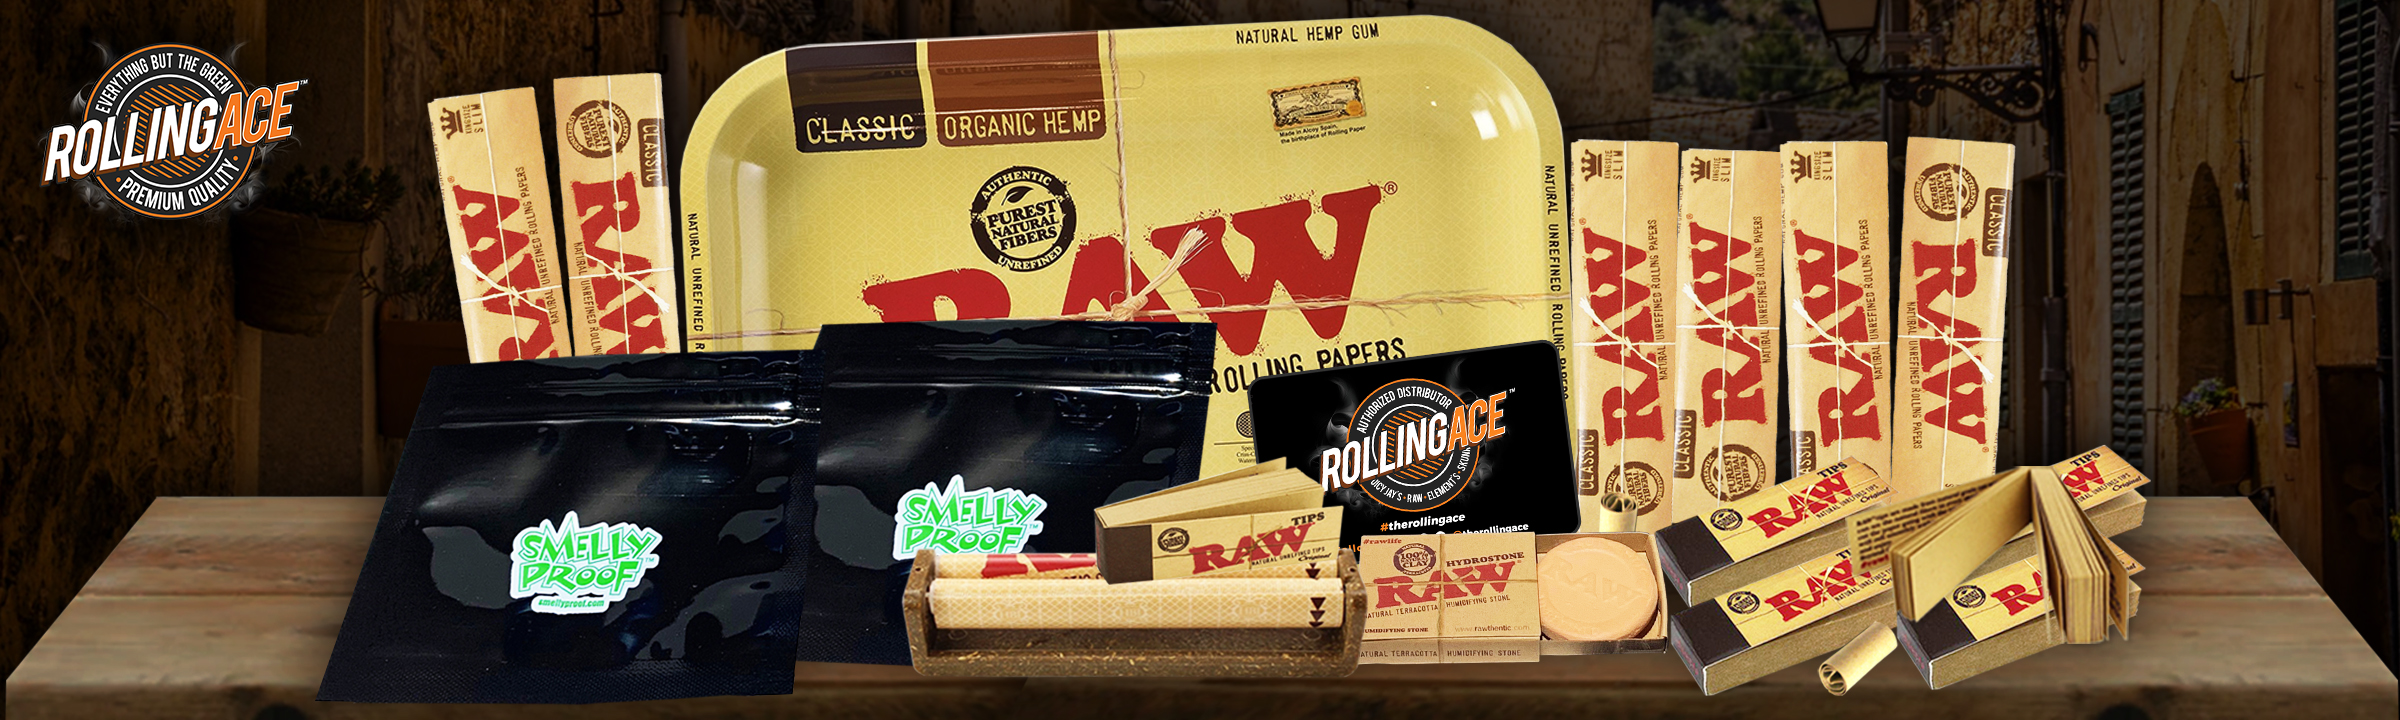 Raw King Size Classic Bundle with Tray